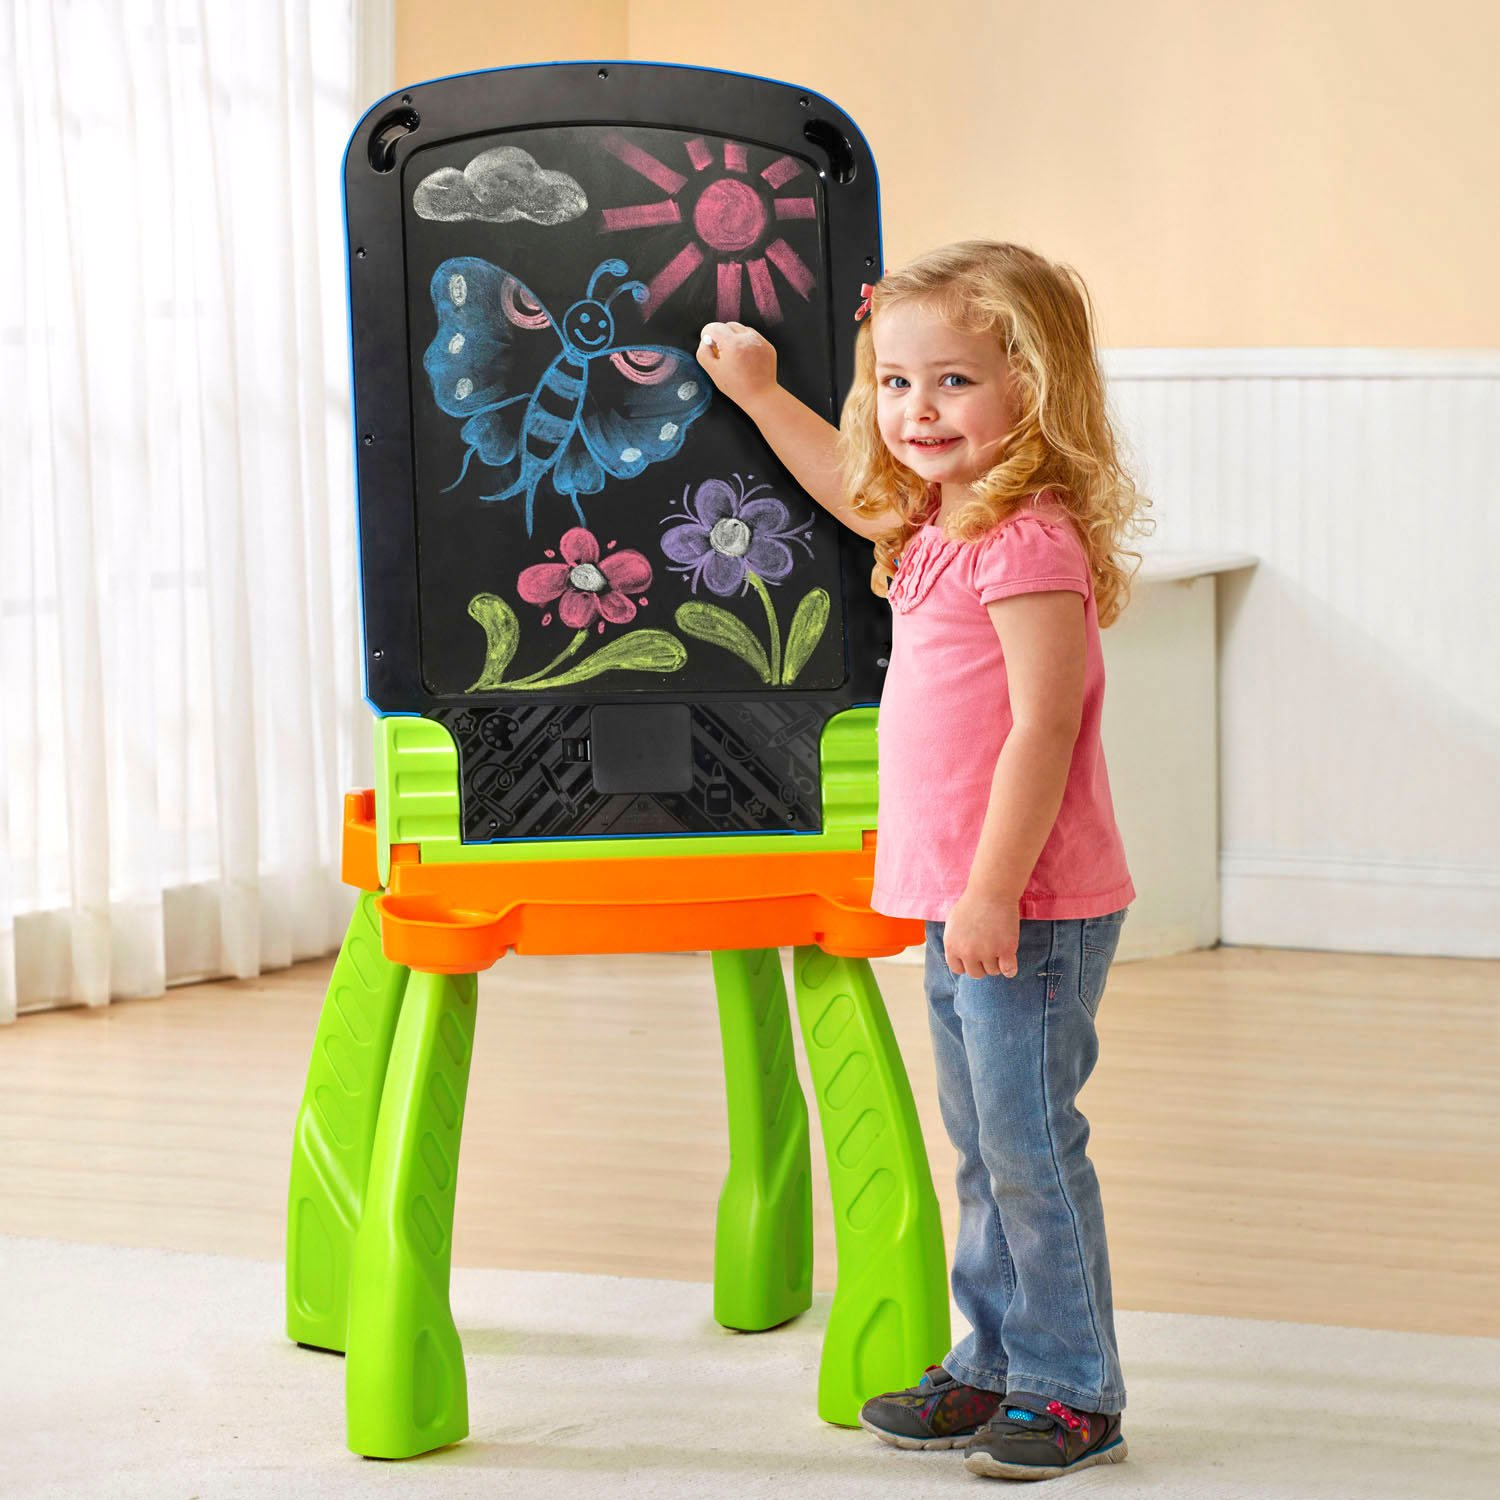 VTech DigiArt Creative Easel (Frustration Free Packaging) by VTech (Image #3)